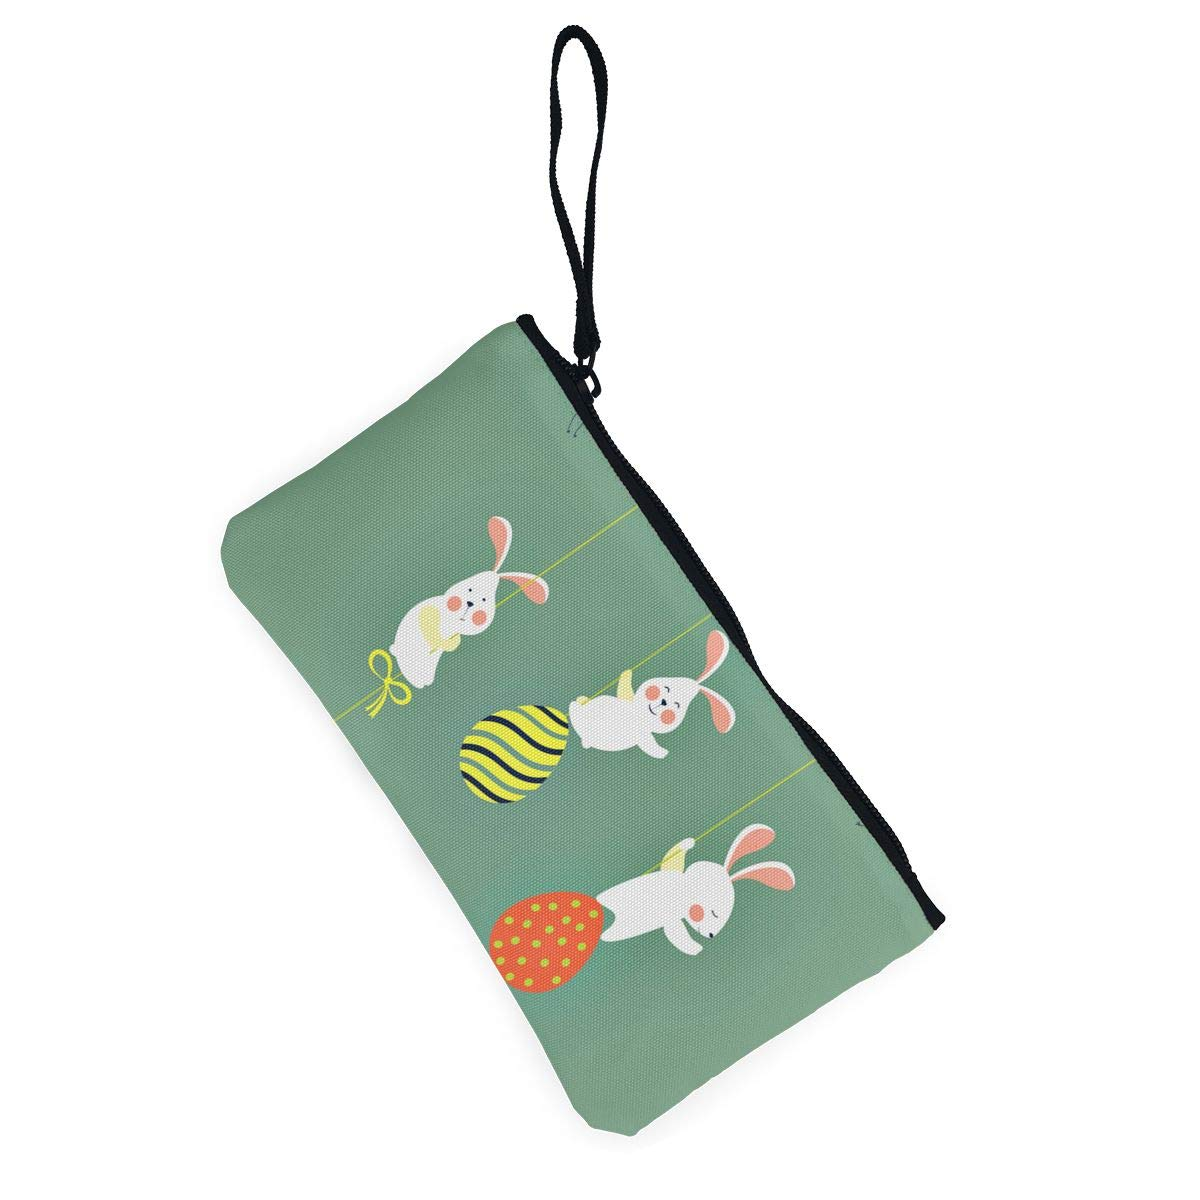 Maple Memories Easter Egg Bunny Portable Canvas Coin Purse Change Purse Pouch Mini Wallet Gifts For Women Girls